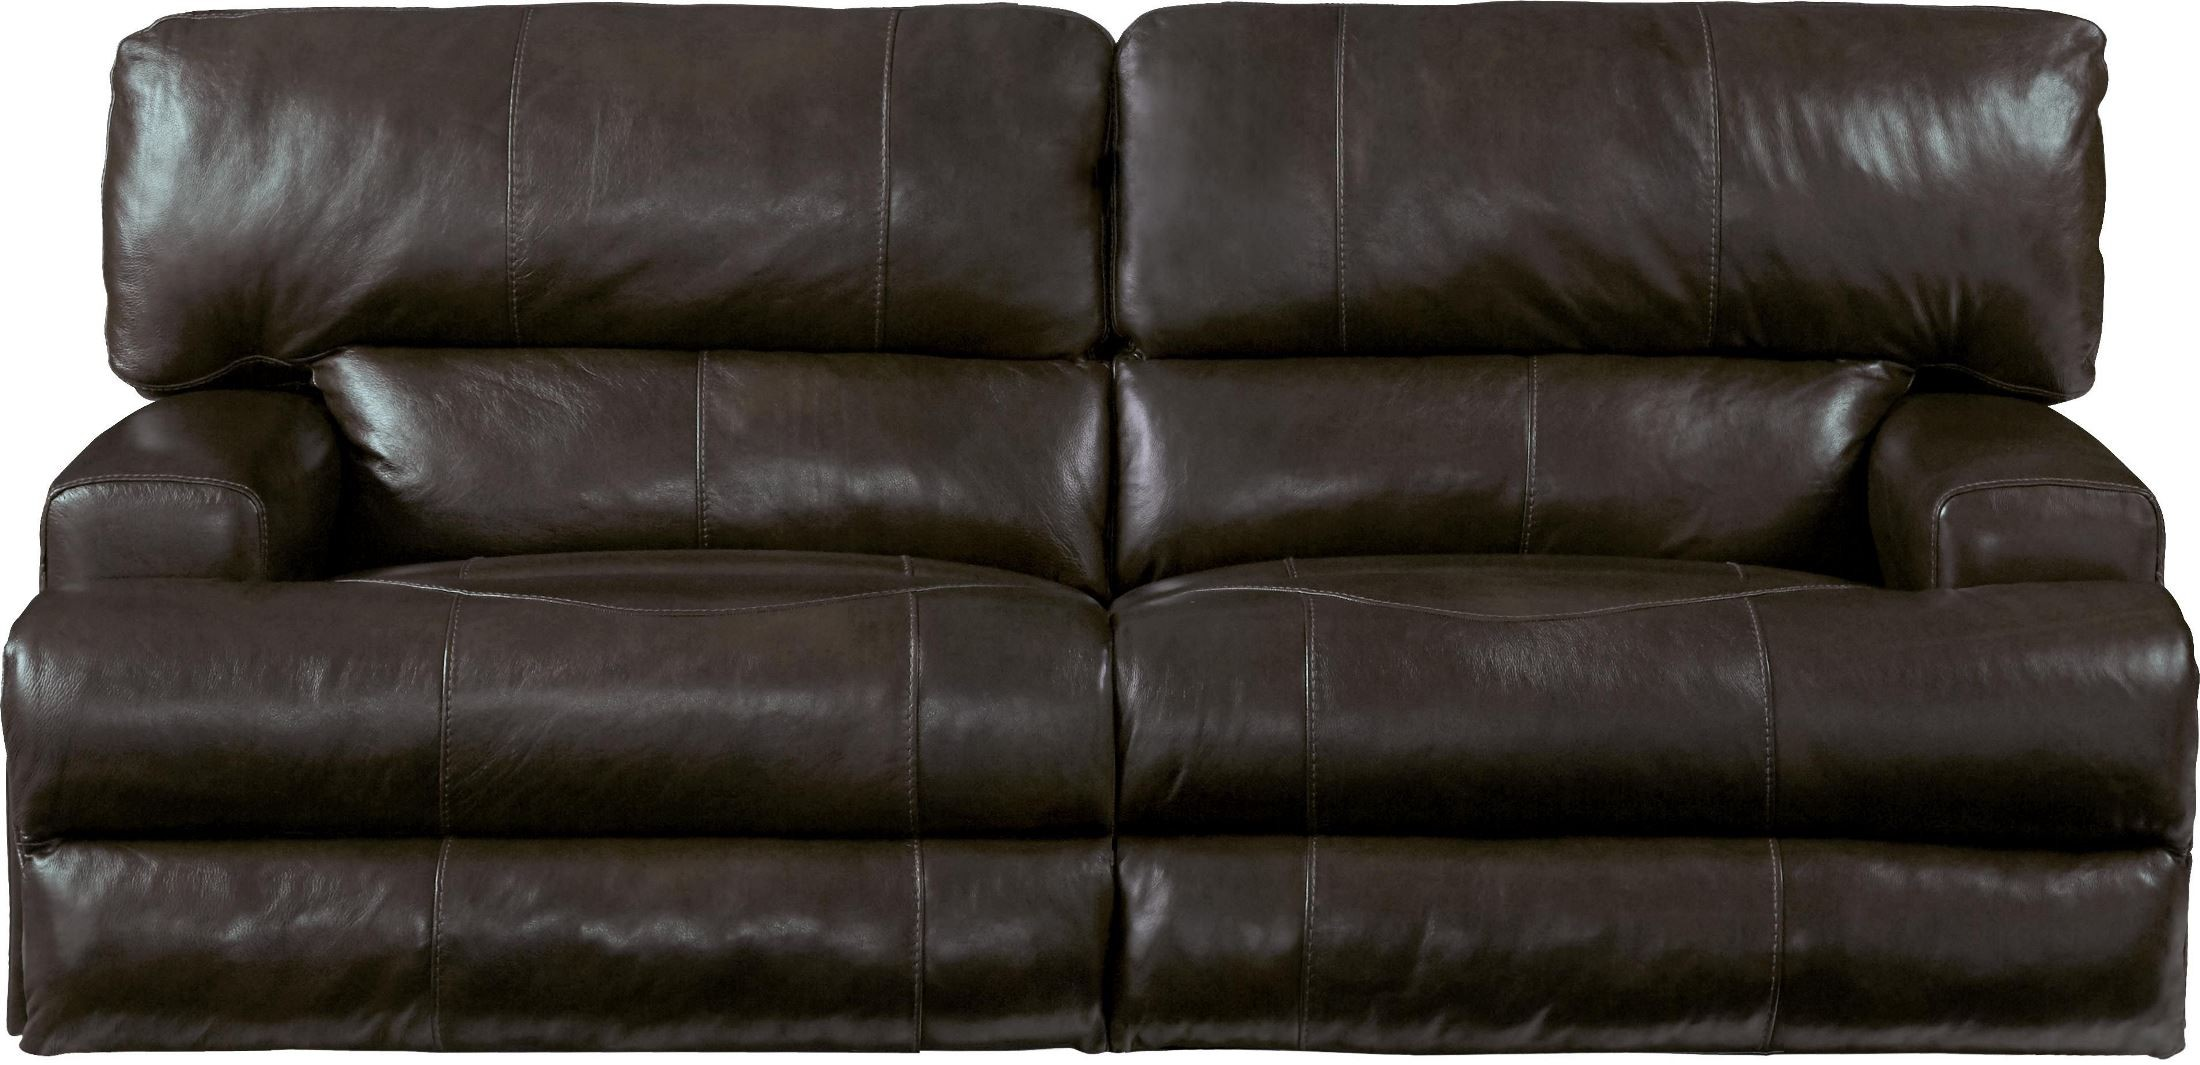 Wembley chocolate lay flat reclining sofa from catnapper for Catnapper cloud nine chaise recliner